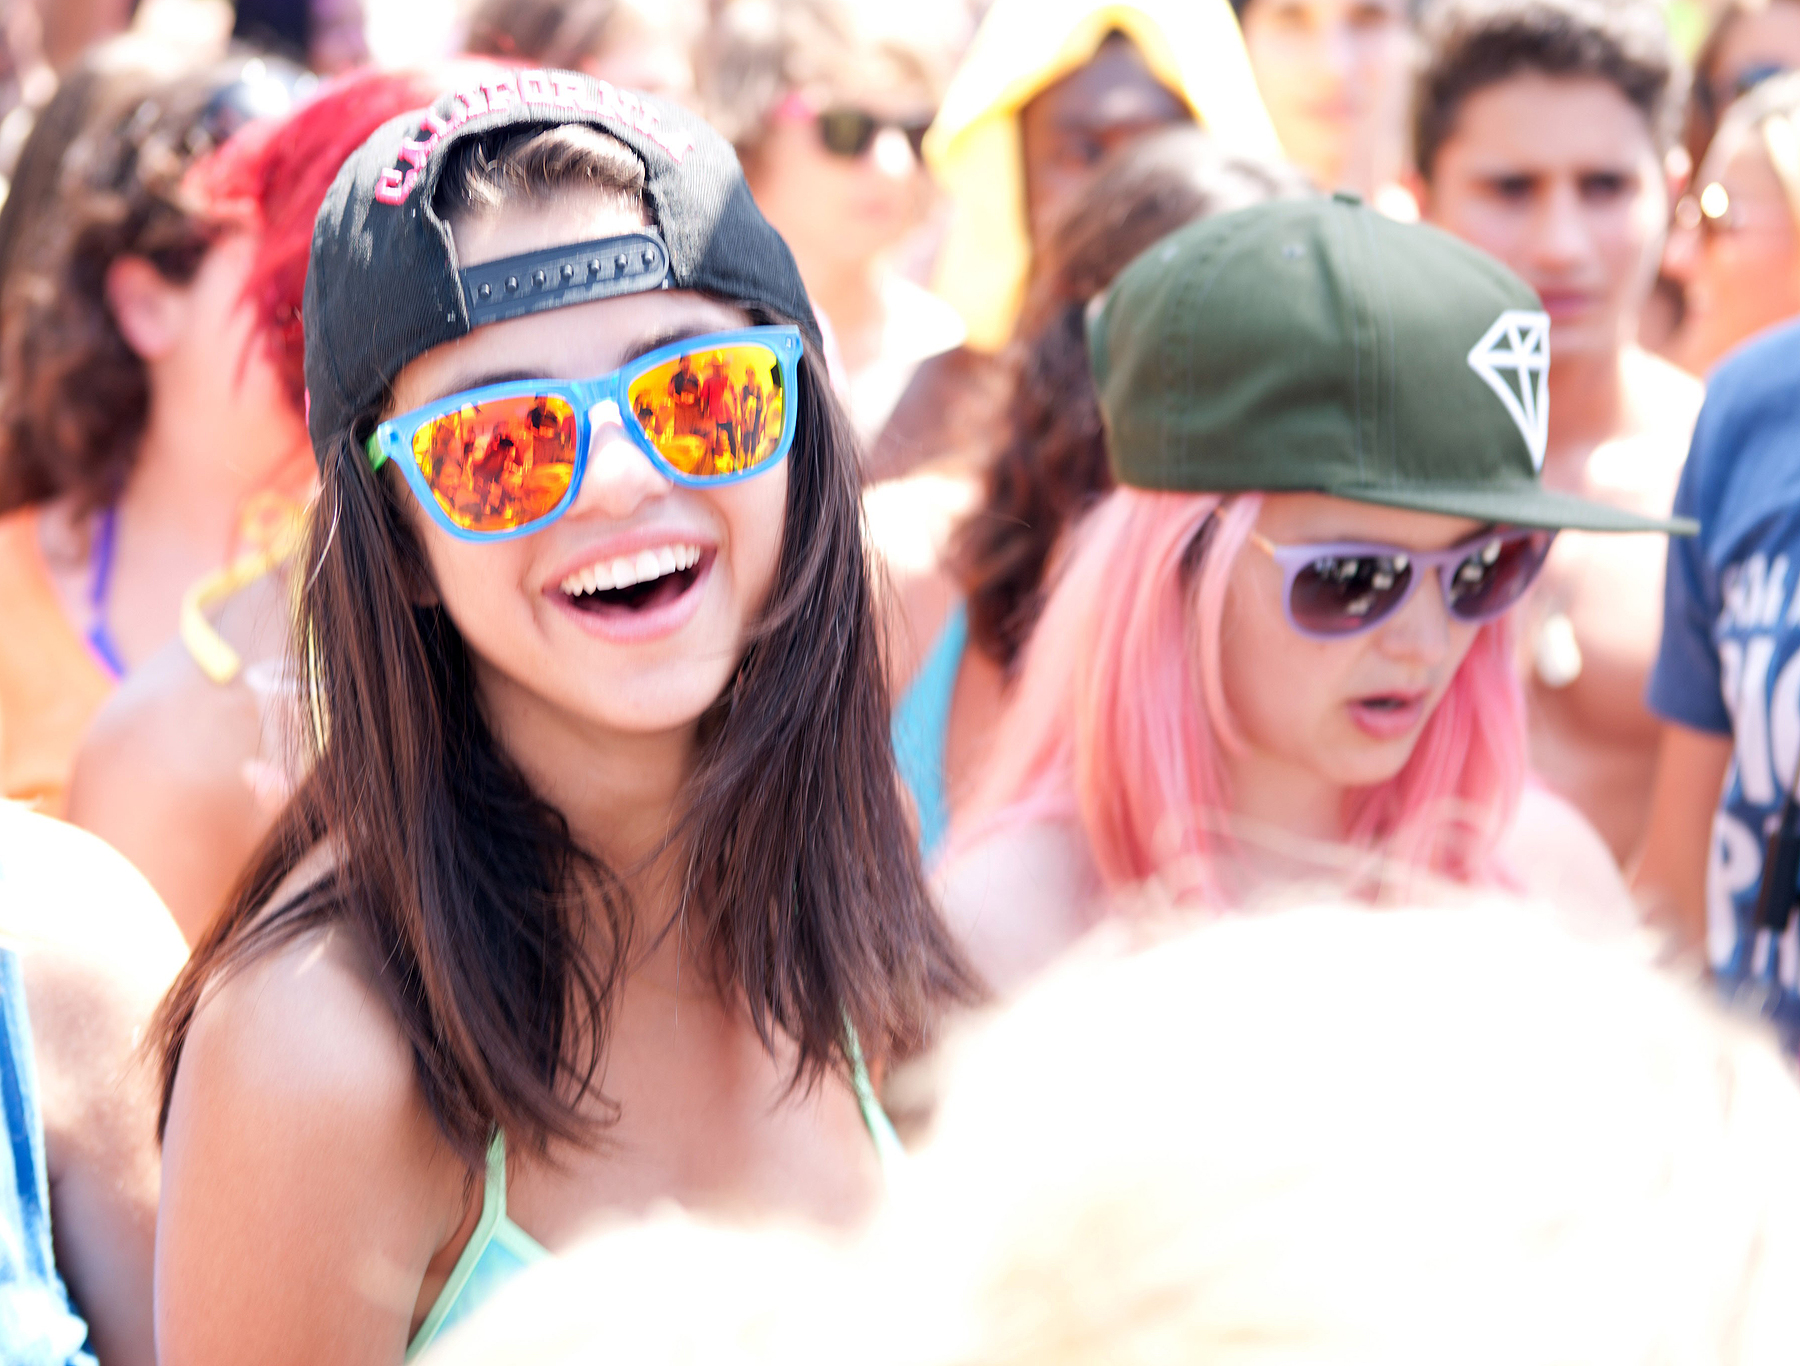 SPRING BREAKERS, from left: Selena Gomez, Rachel Korine, 2012. /©Annapurna Pictures/courtesy Everett